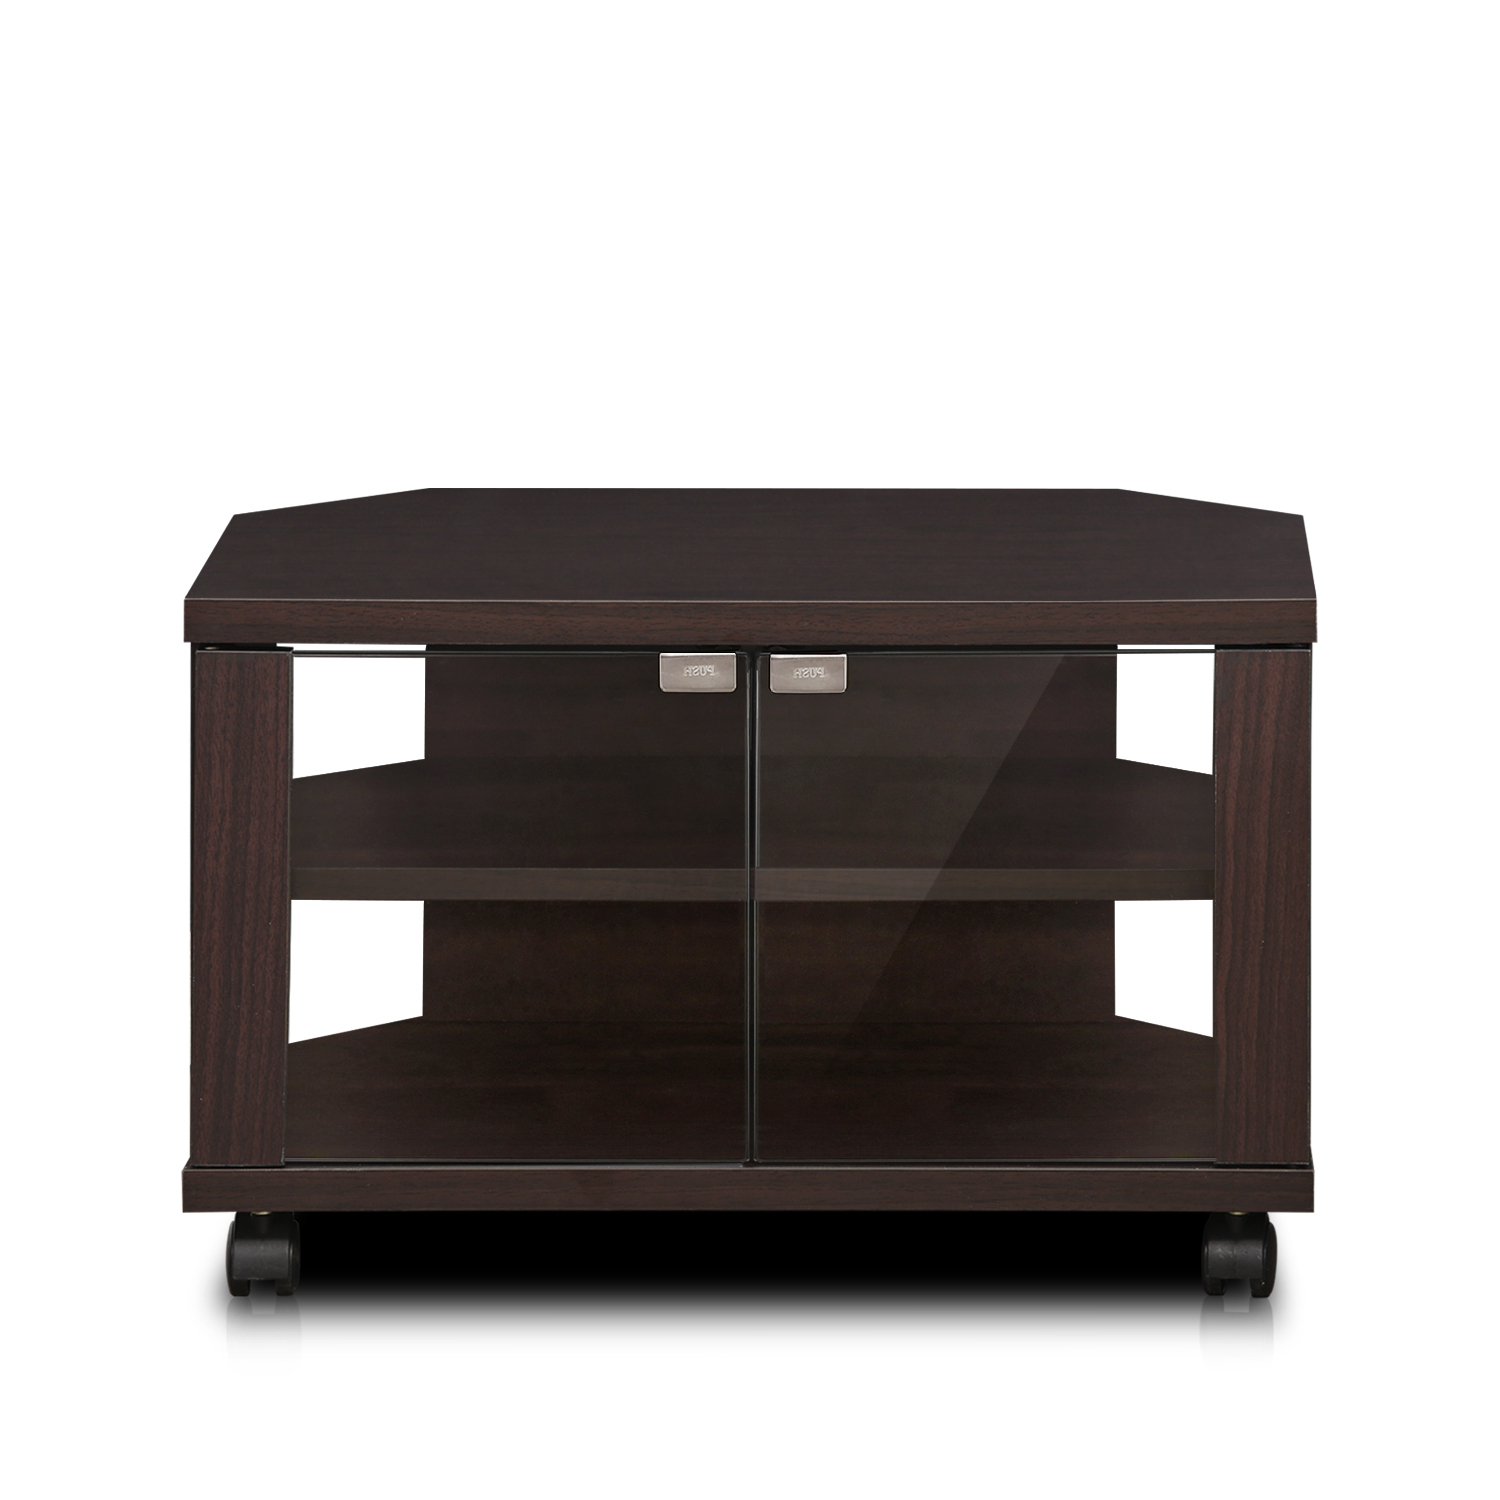 Furinno Indo Petite Tv Stand With Double Glass Doors And With Current Jakarta Tv Stands (View 2 of 10)